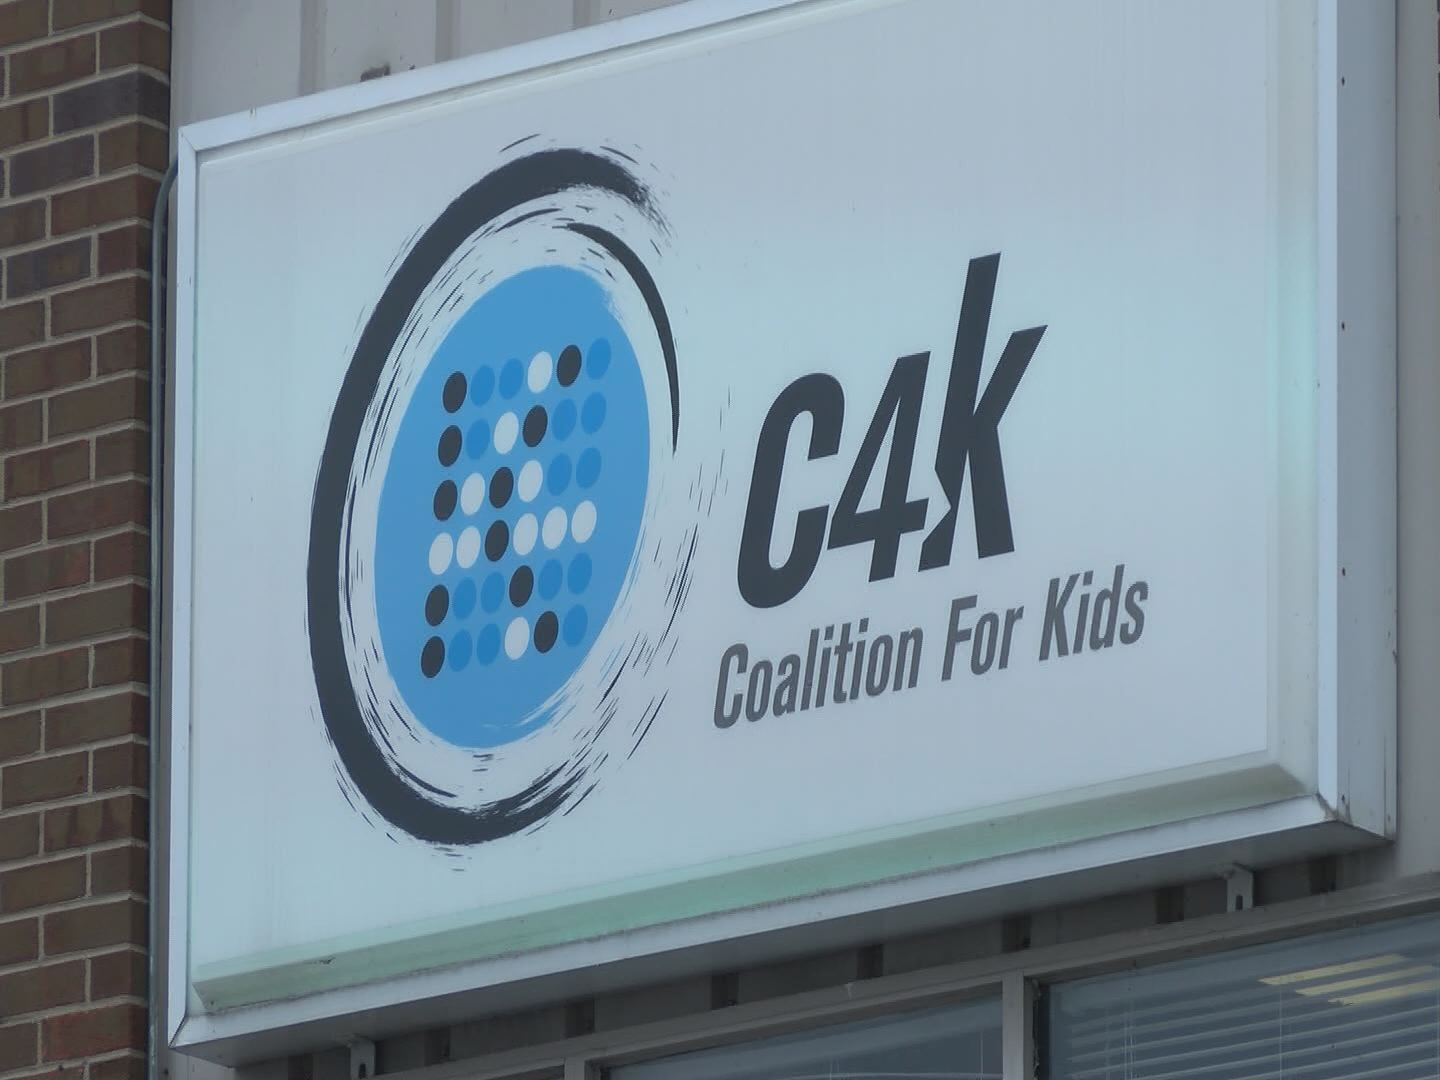 Coalition For Kids_62922